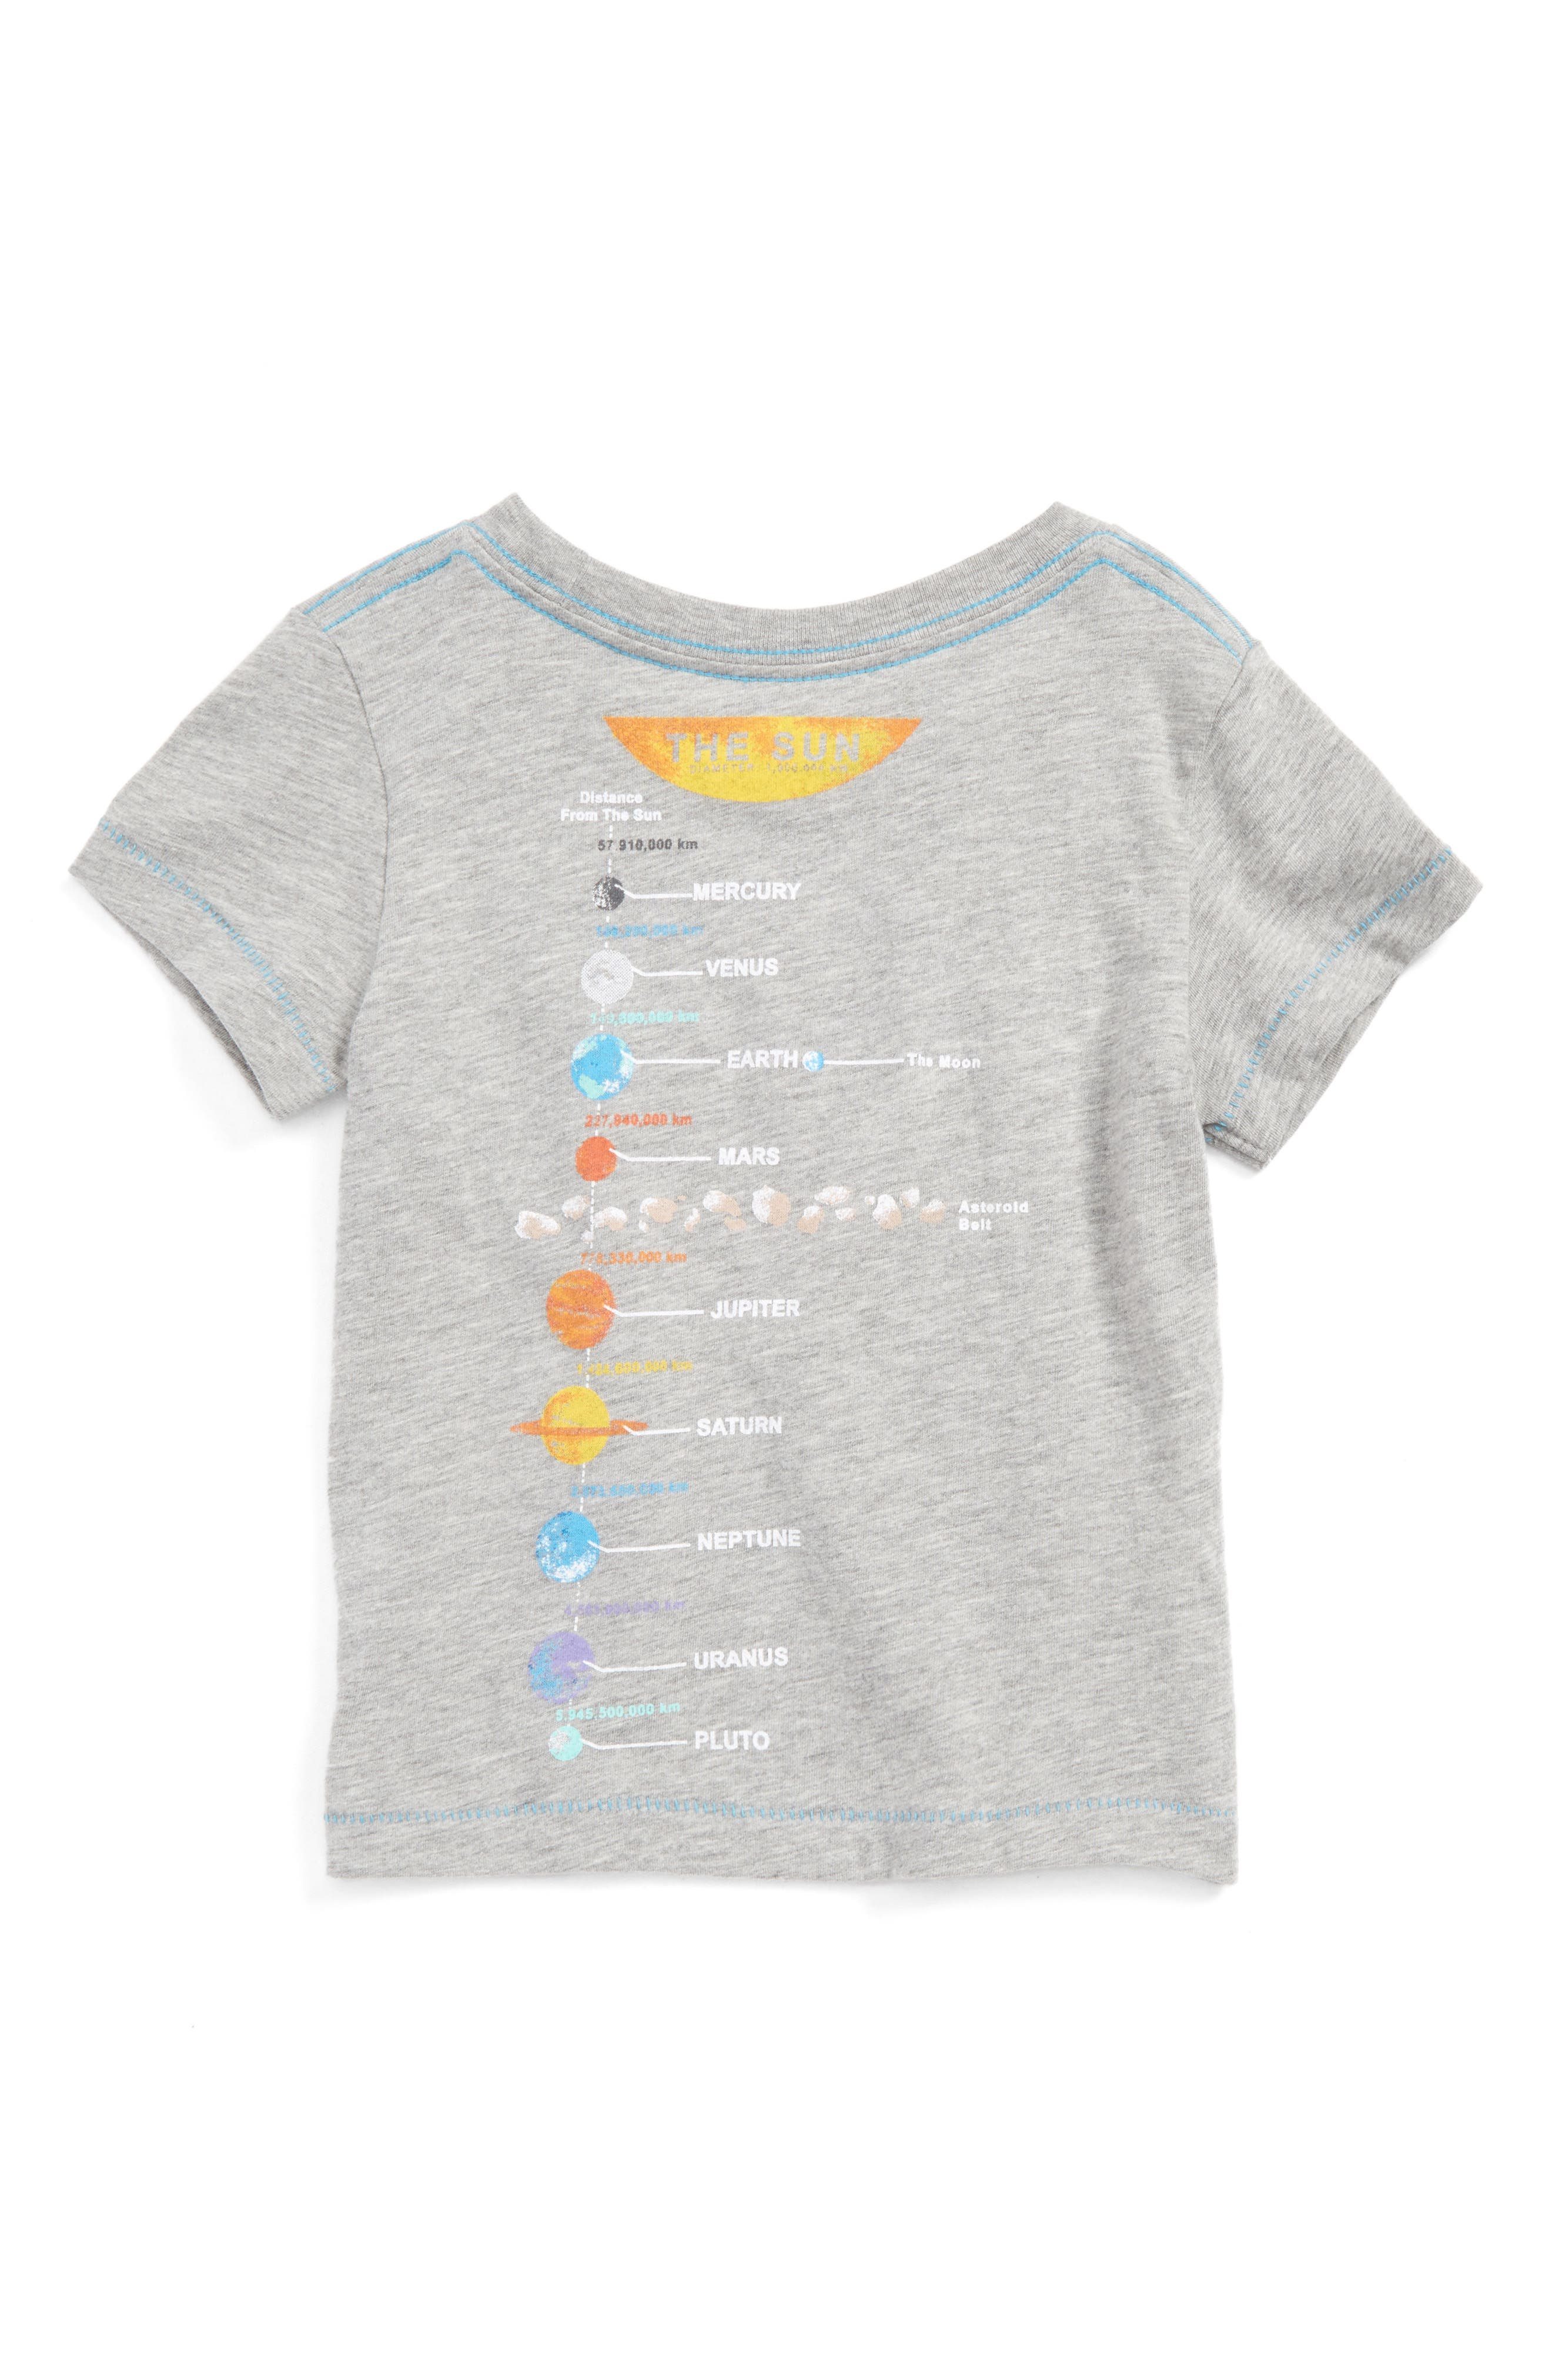 Everything Revolves Around Me T-Shirt,                             Alternate thumbnail 2, color,                             054